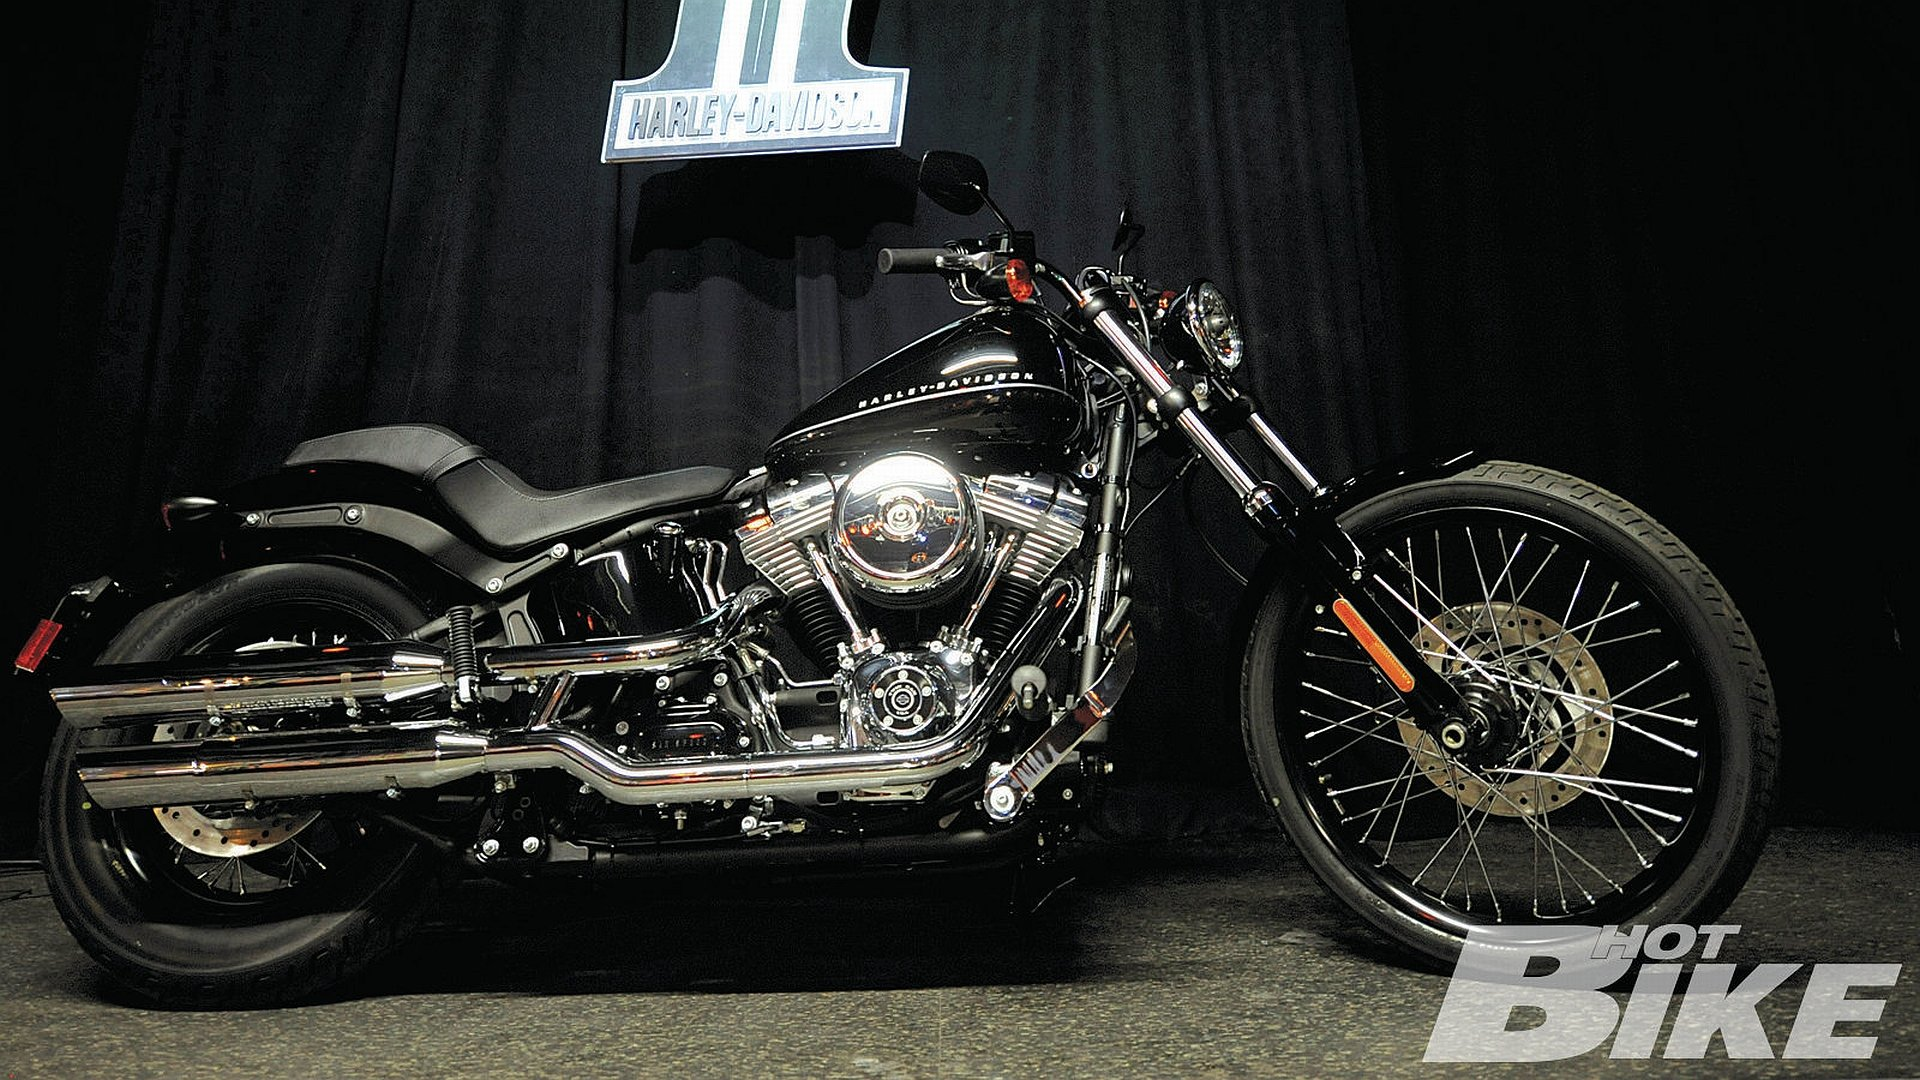 Free Harley Davidson High Quality Wallpaper Id478231 For